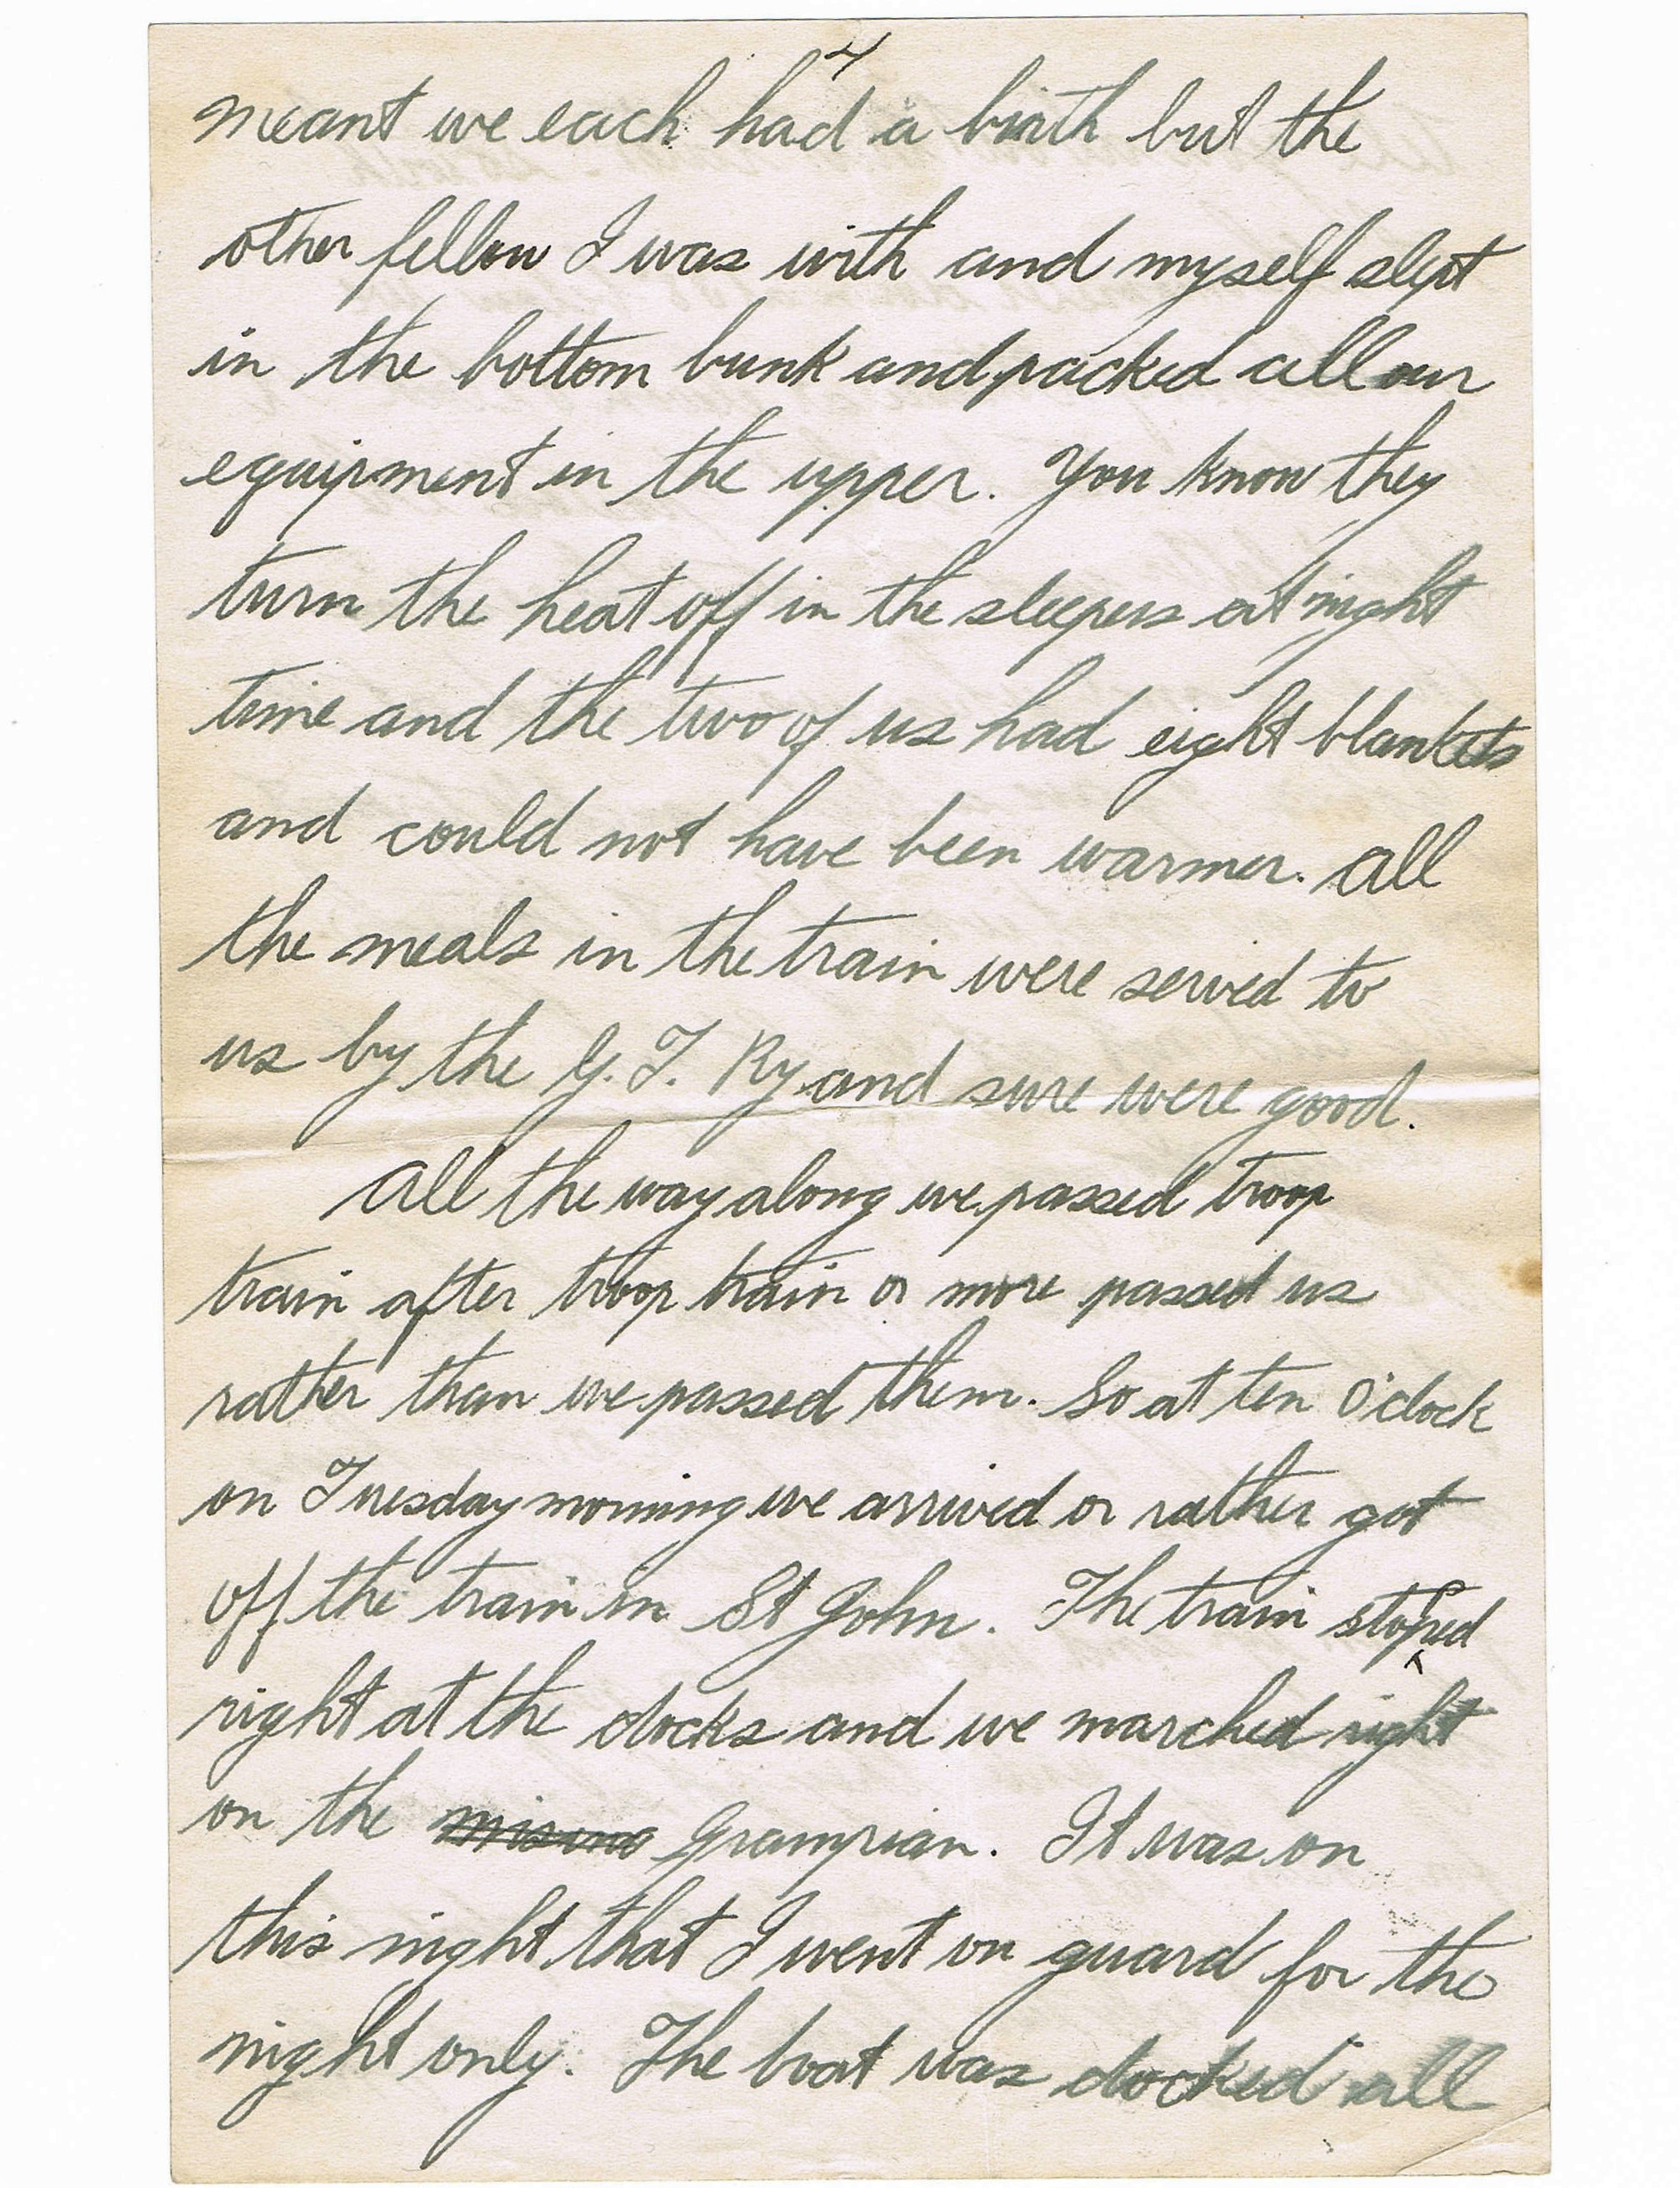 Fourth page of handwritten letter